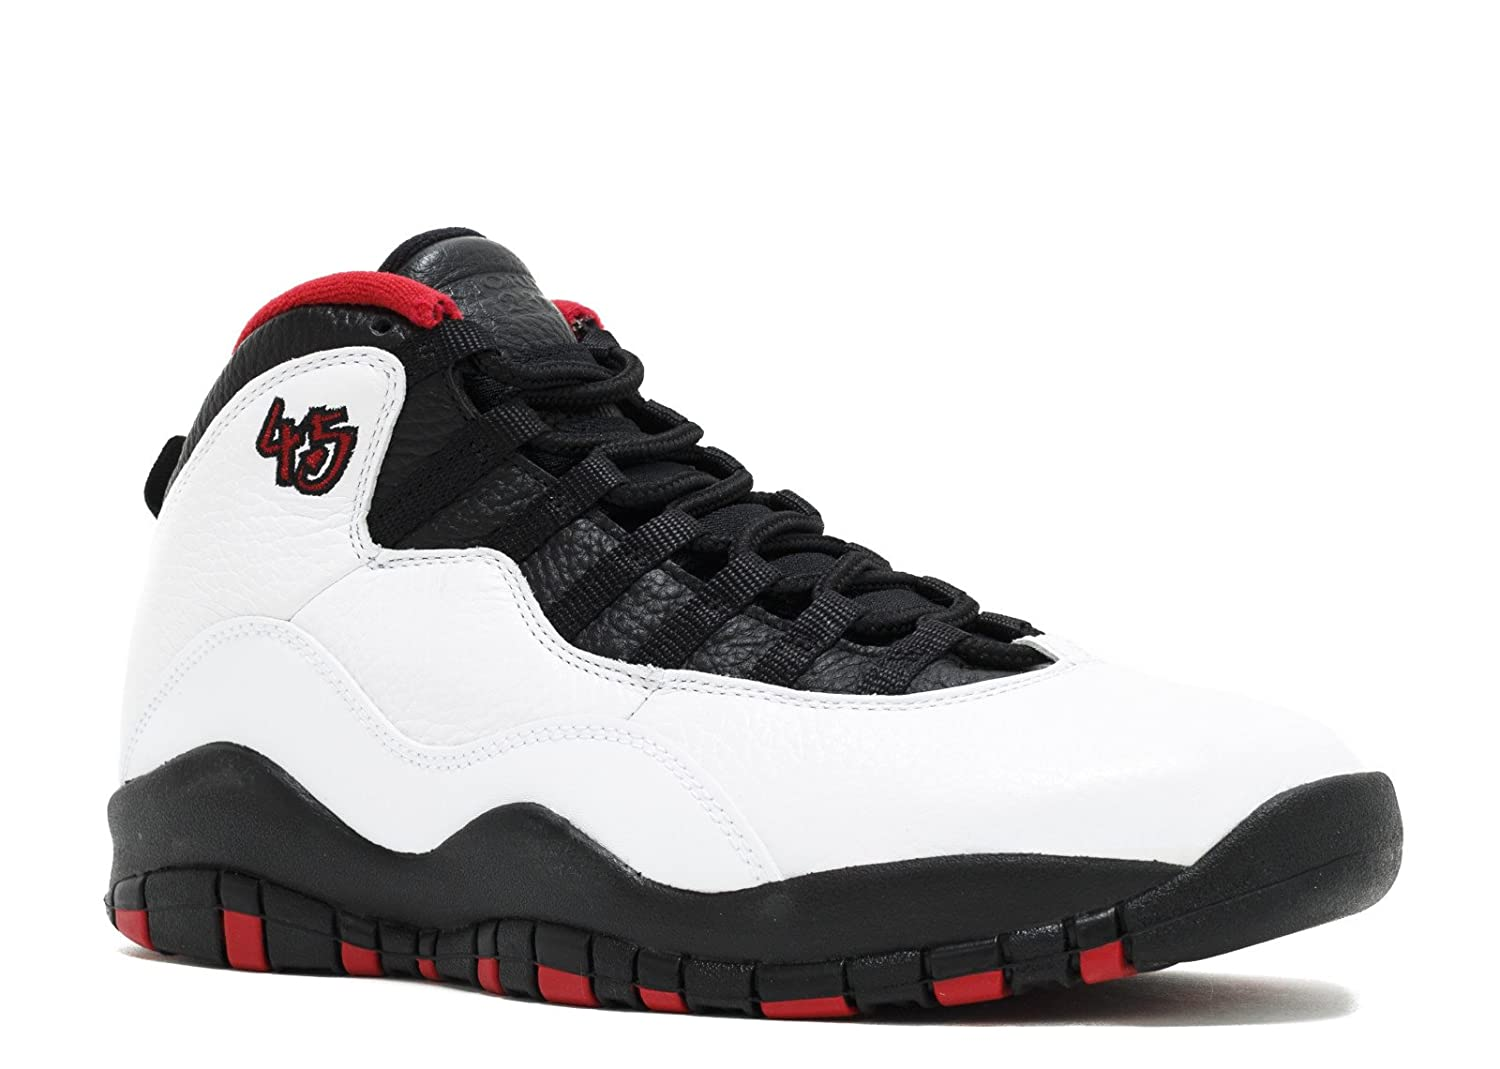 best service b4524 528e8 Amazon.com   Jordan Air Retro 10